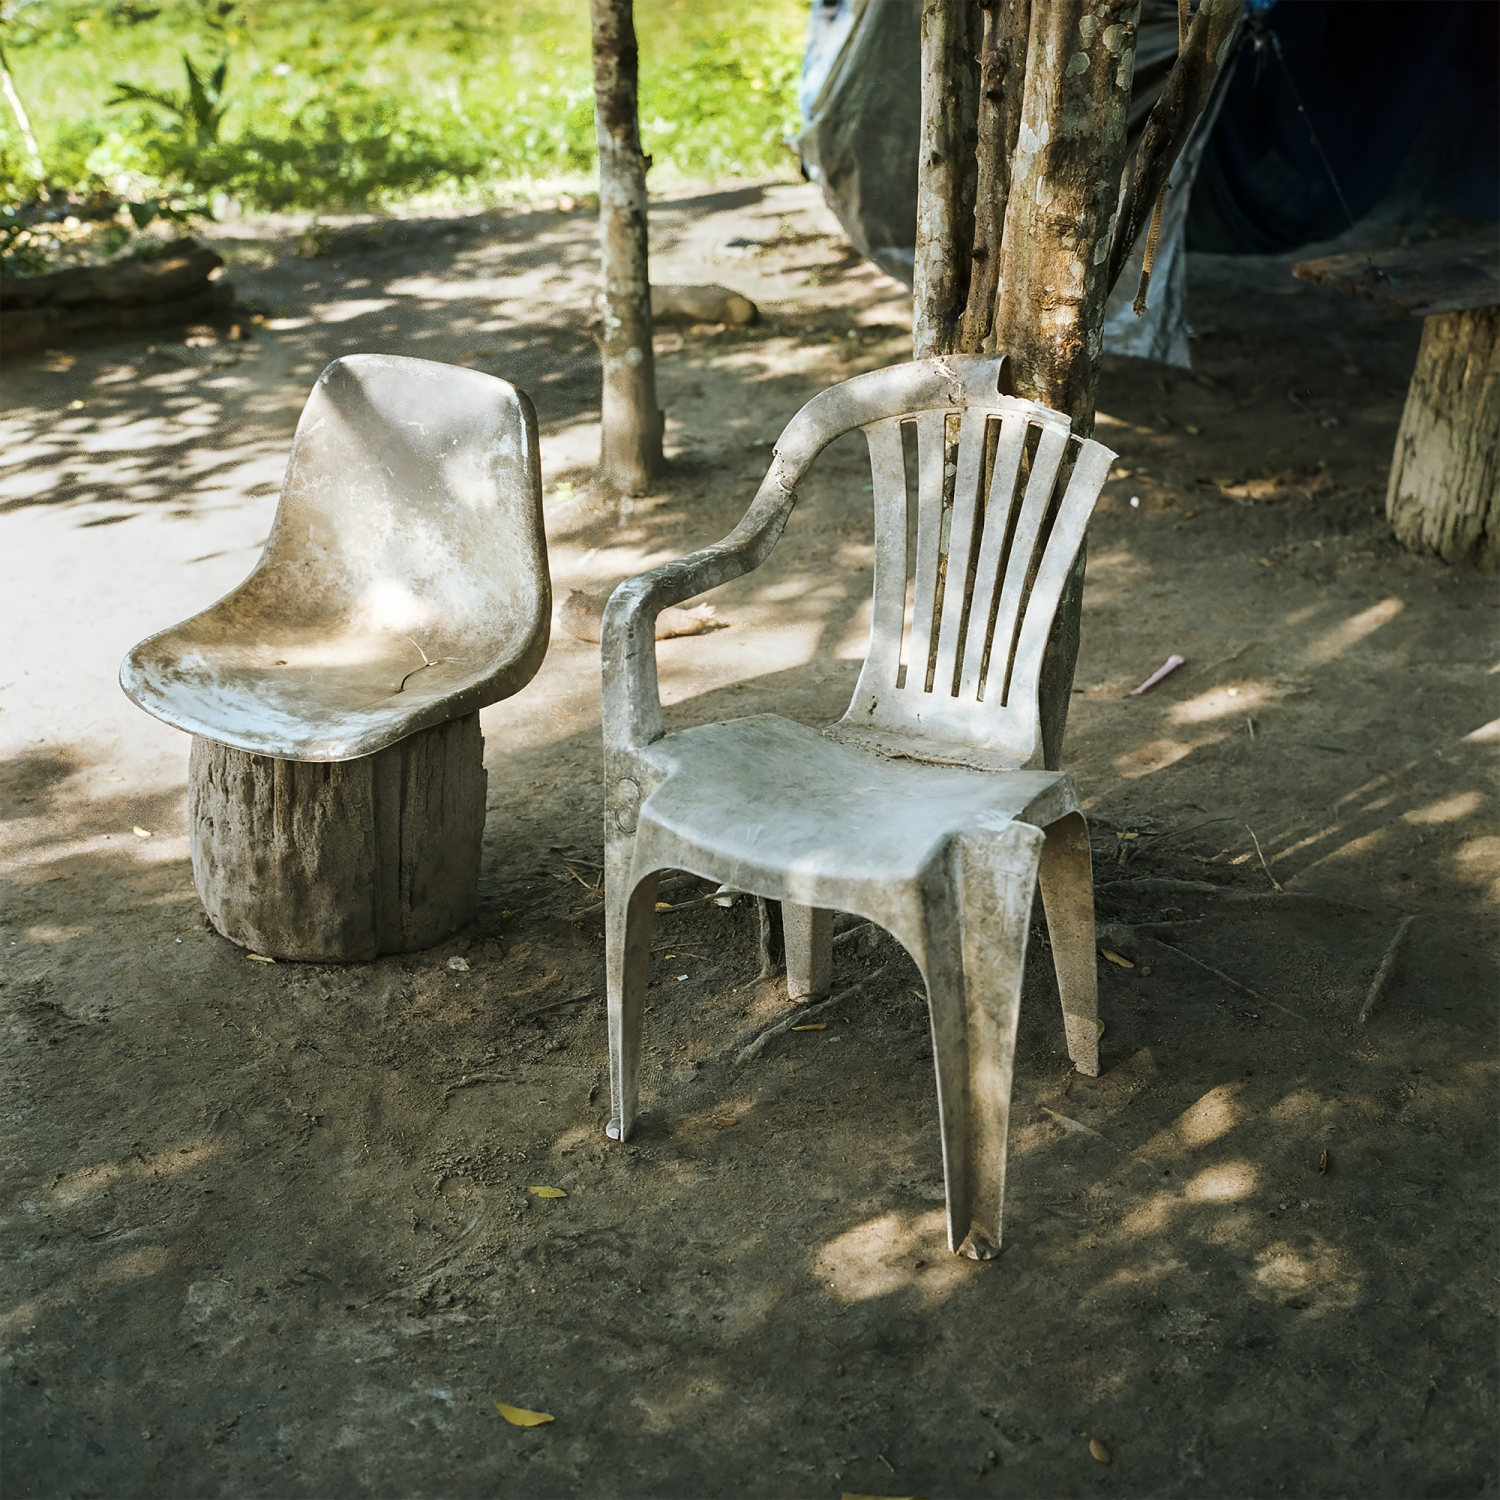 2017. A chair that has been repaired with fishing line at a relocation site for a riberihno family on the Belo Monte Dam Reservoir.  /Aaron Vincent Elkaim